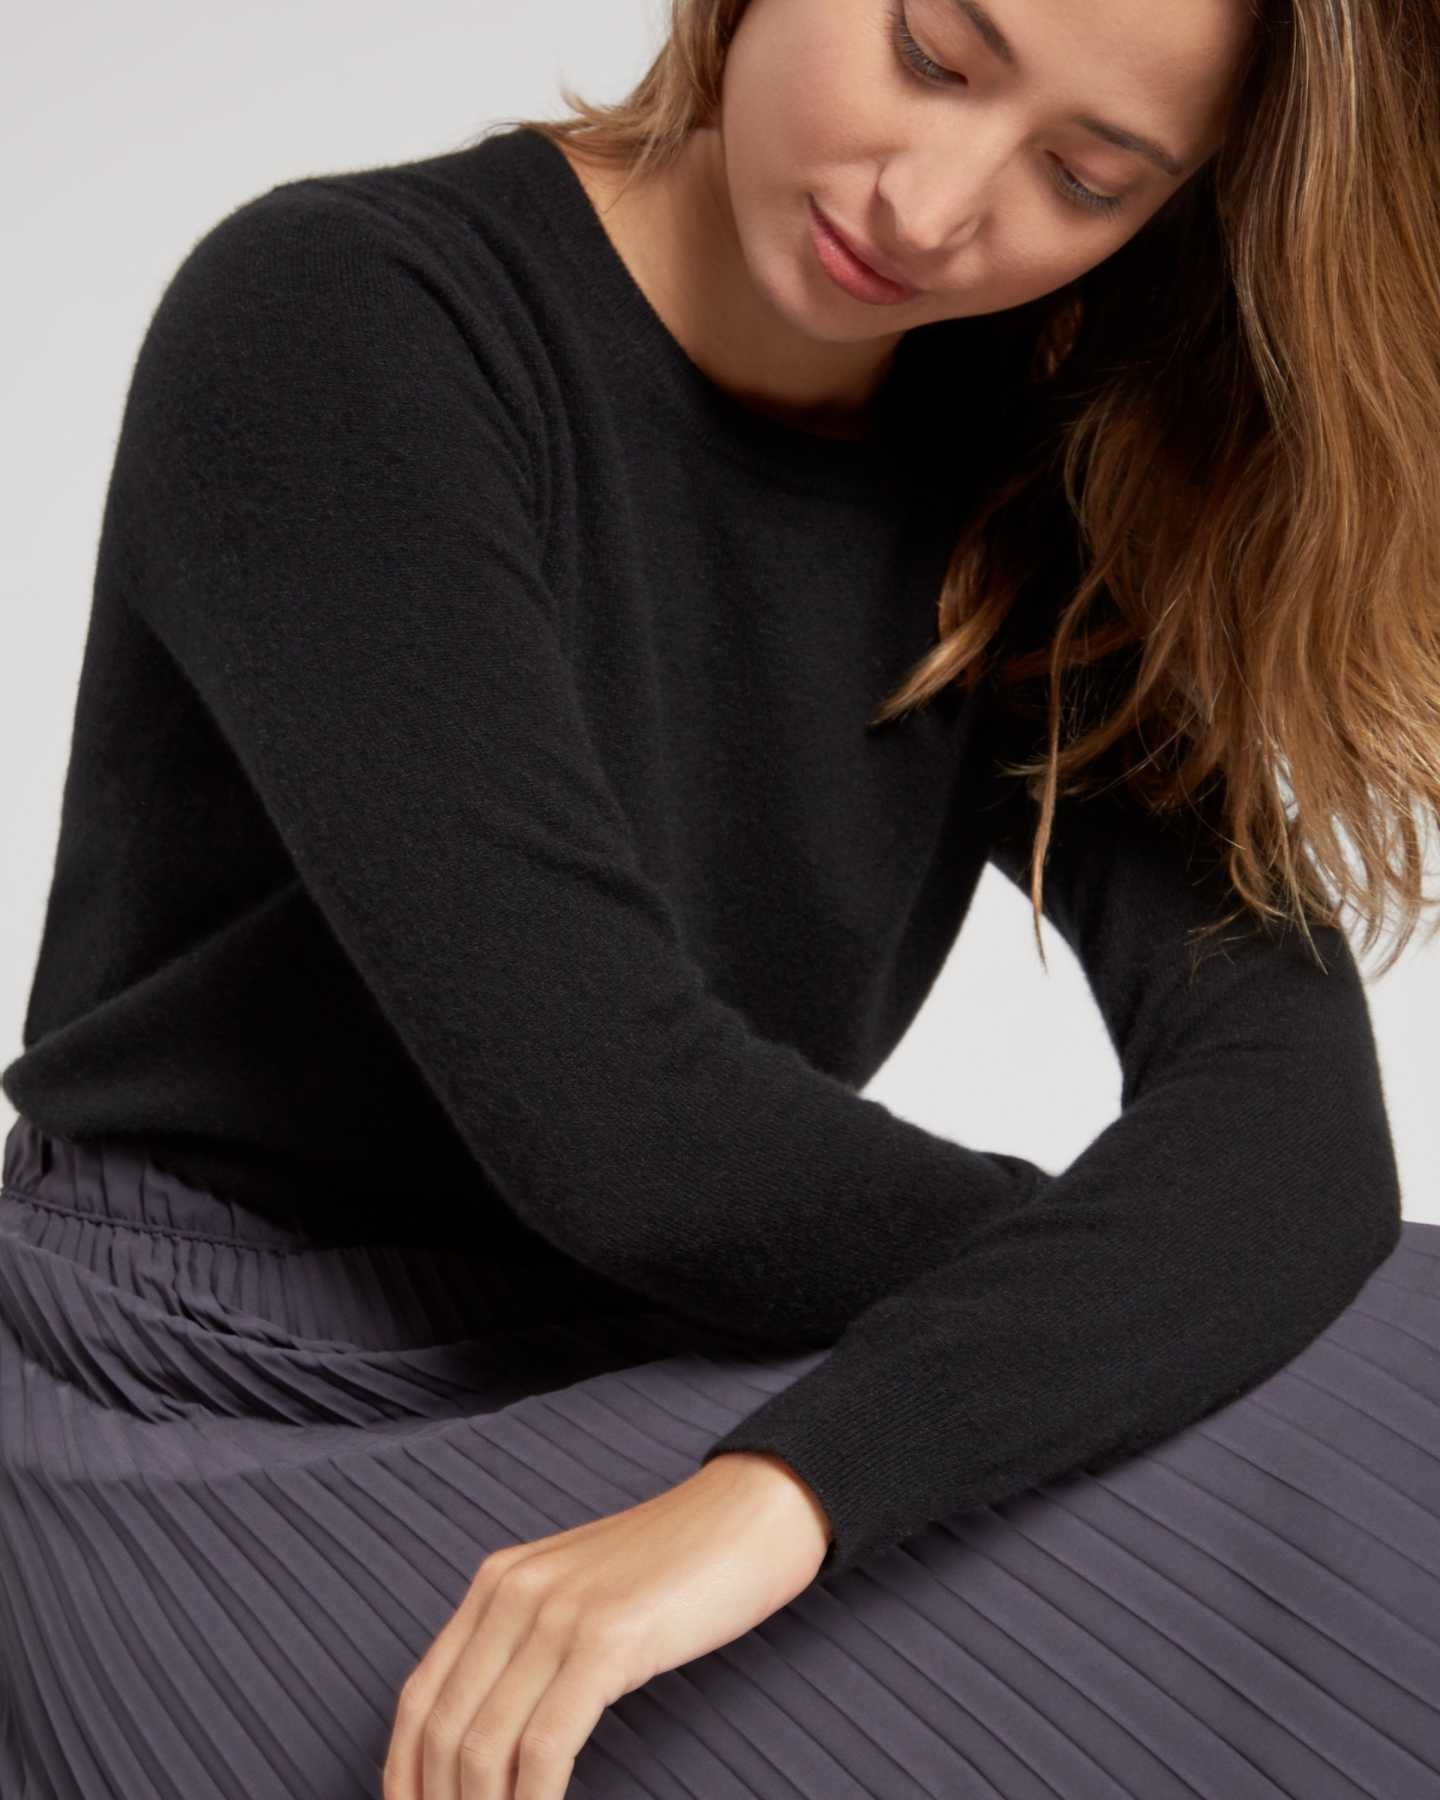 black cashmere sweater women sitting